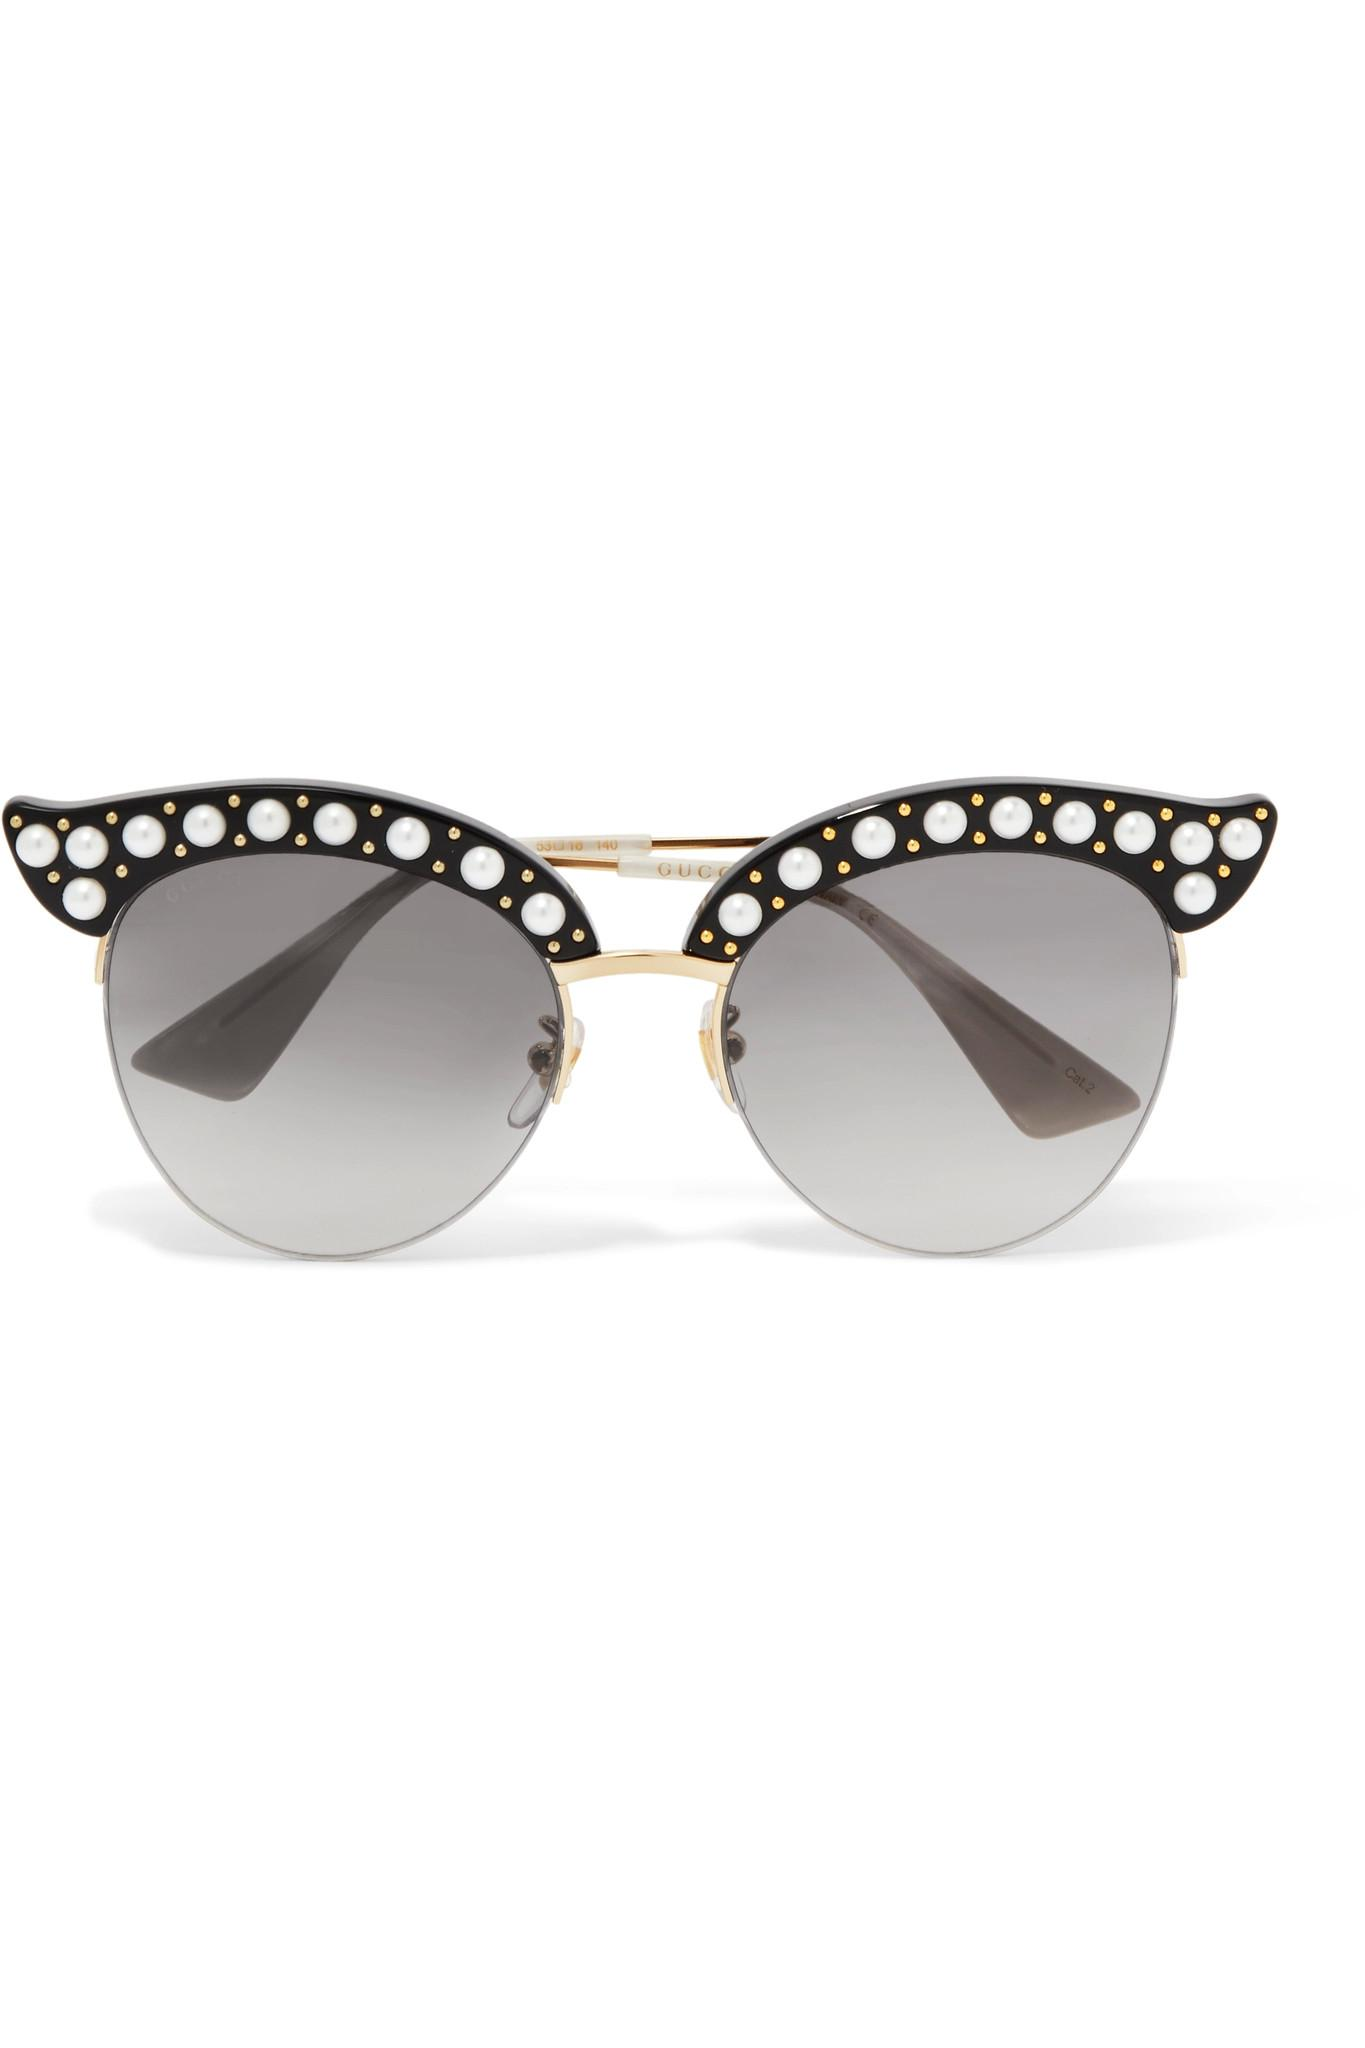 d591409bb0a Gucci. Women s Black Embellished Cat-eye Acetate And Gold-tone Sunglasses